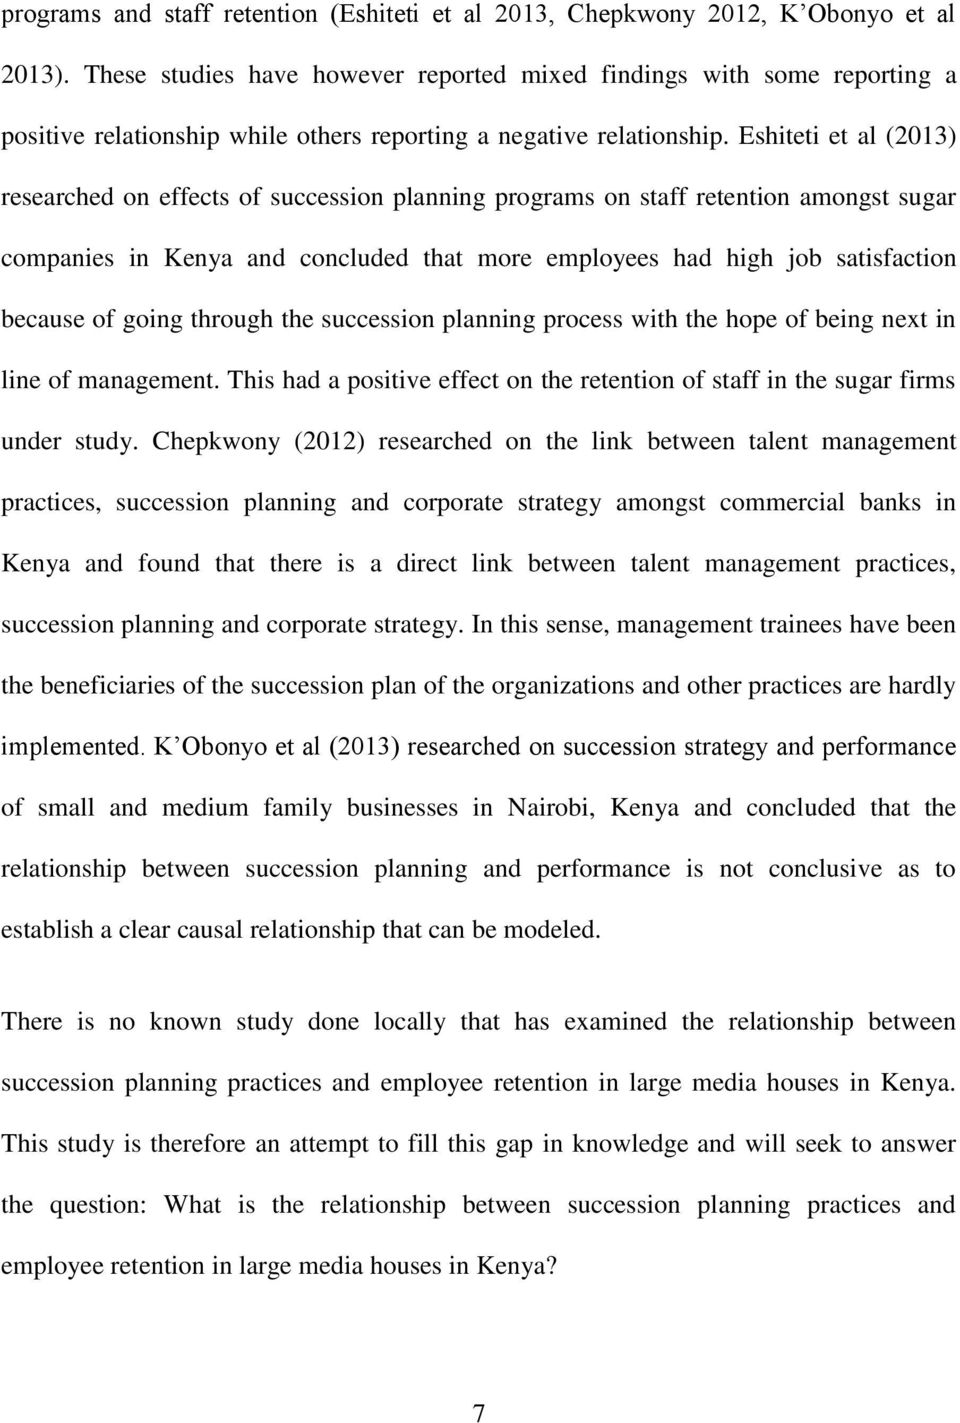 Eshiteti et al (2013) researched on effects of succession planning programs on staff retention amongst sugar companies in Kenya and concluded that more employees had high job satisfaction because of